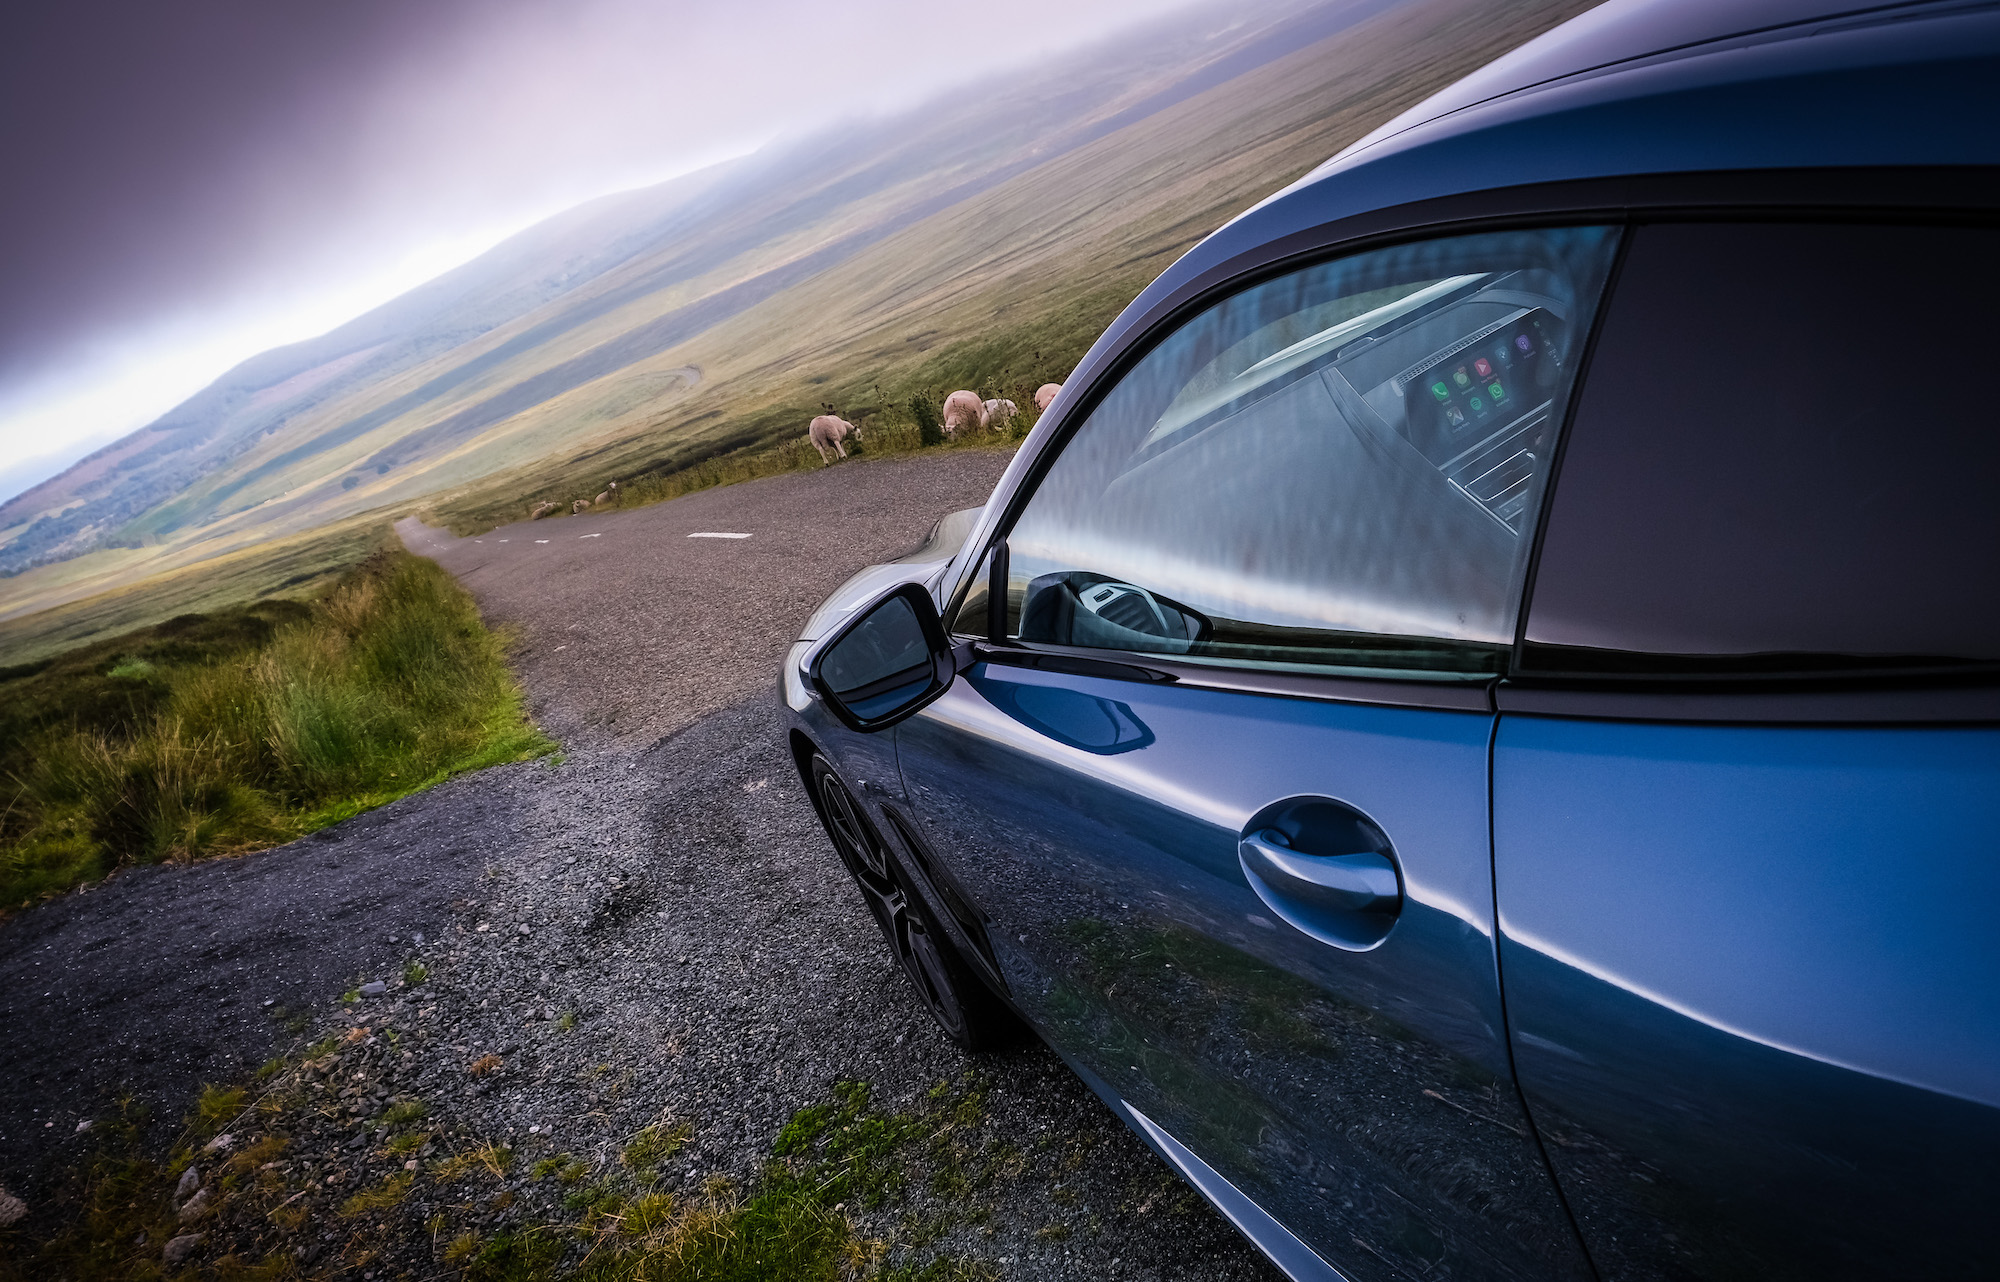 Discover some of Ireland's best road trips this summer